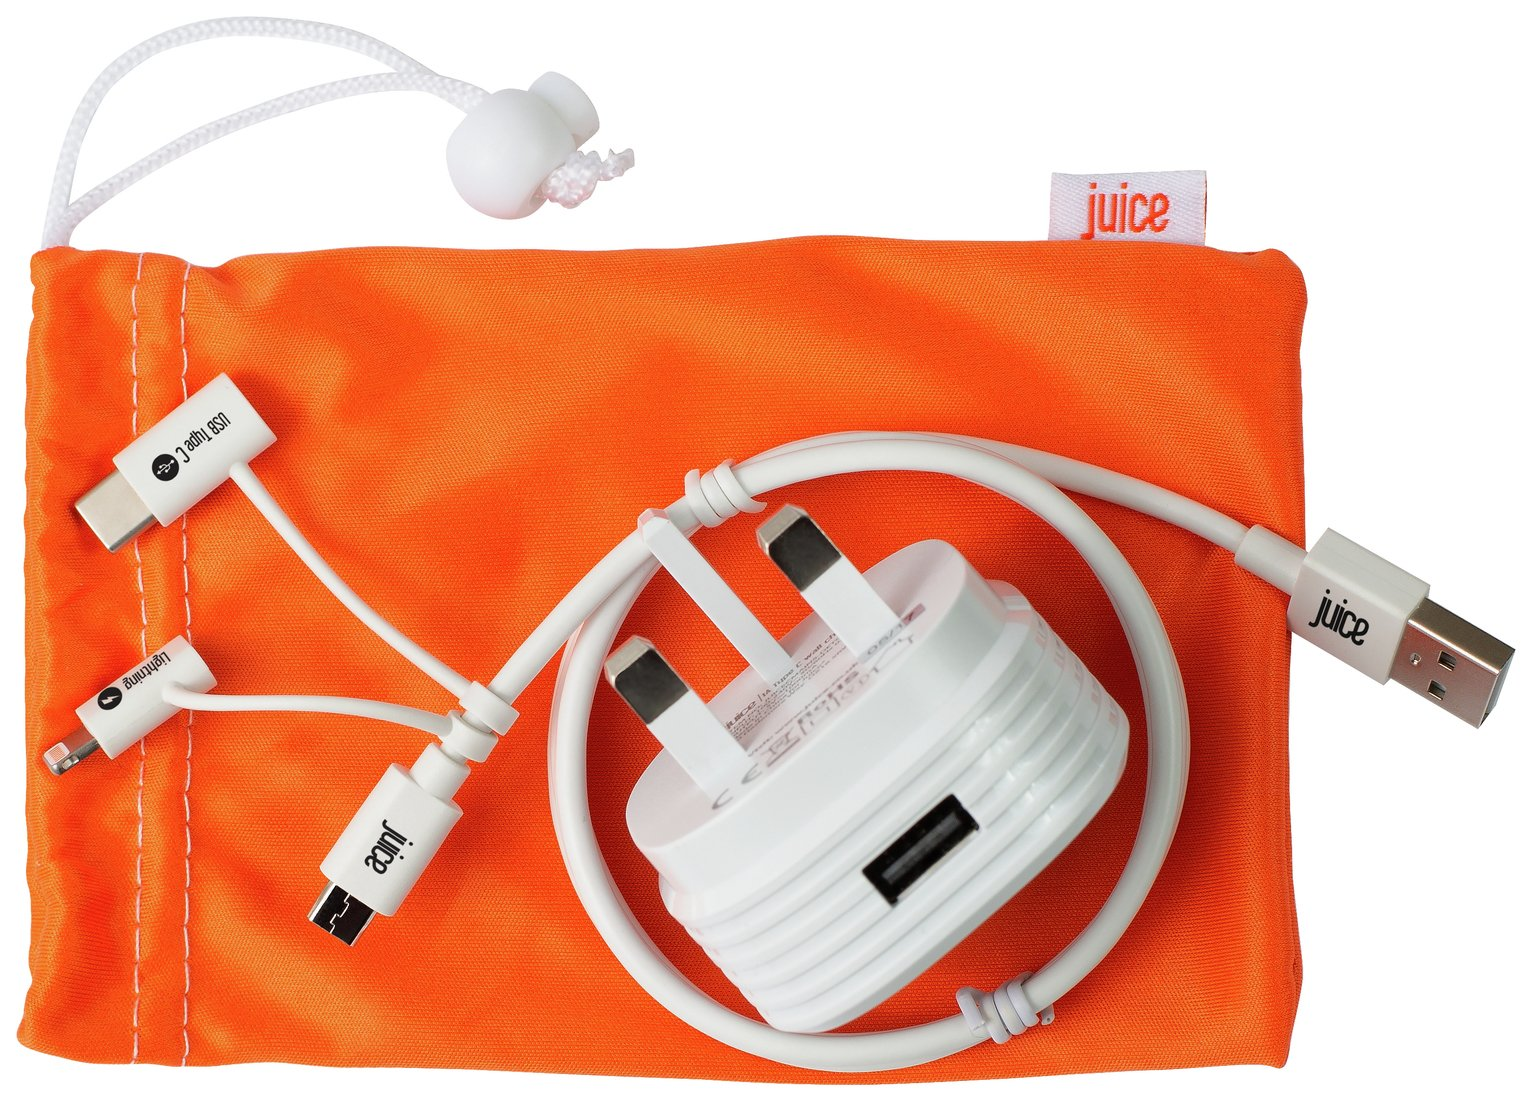 Juice Multi Wall Charger with Micro USB Cable